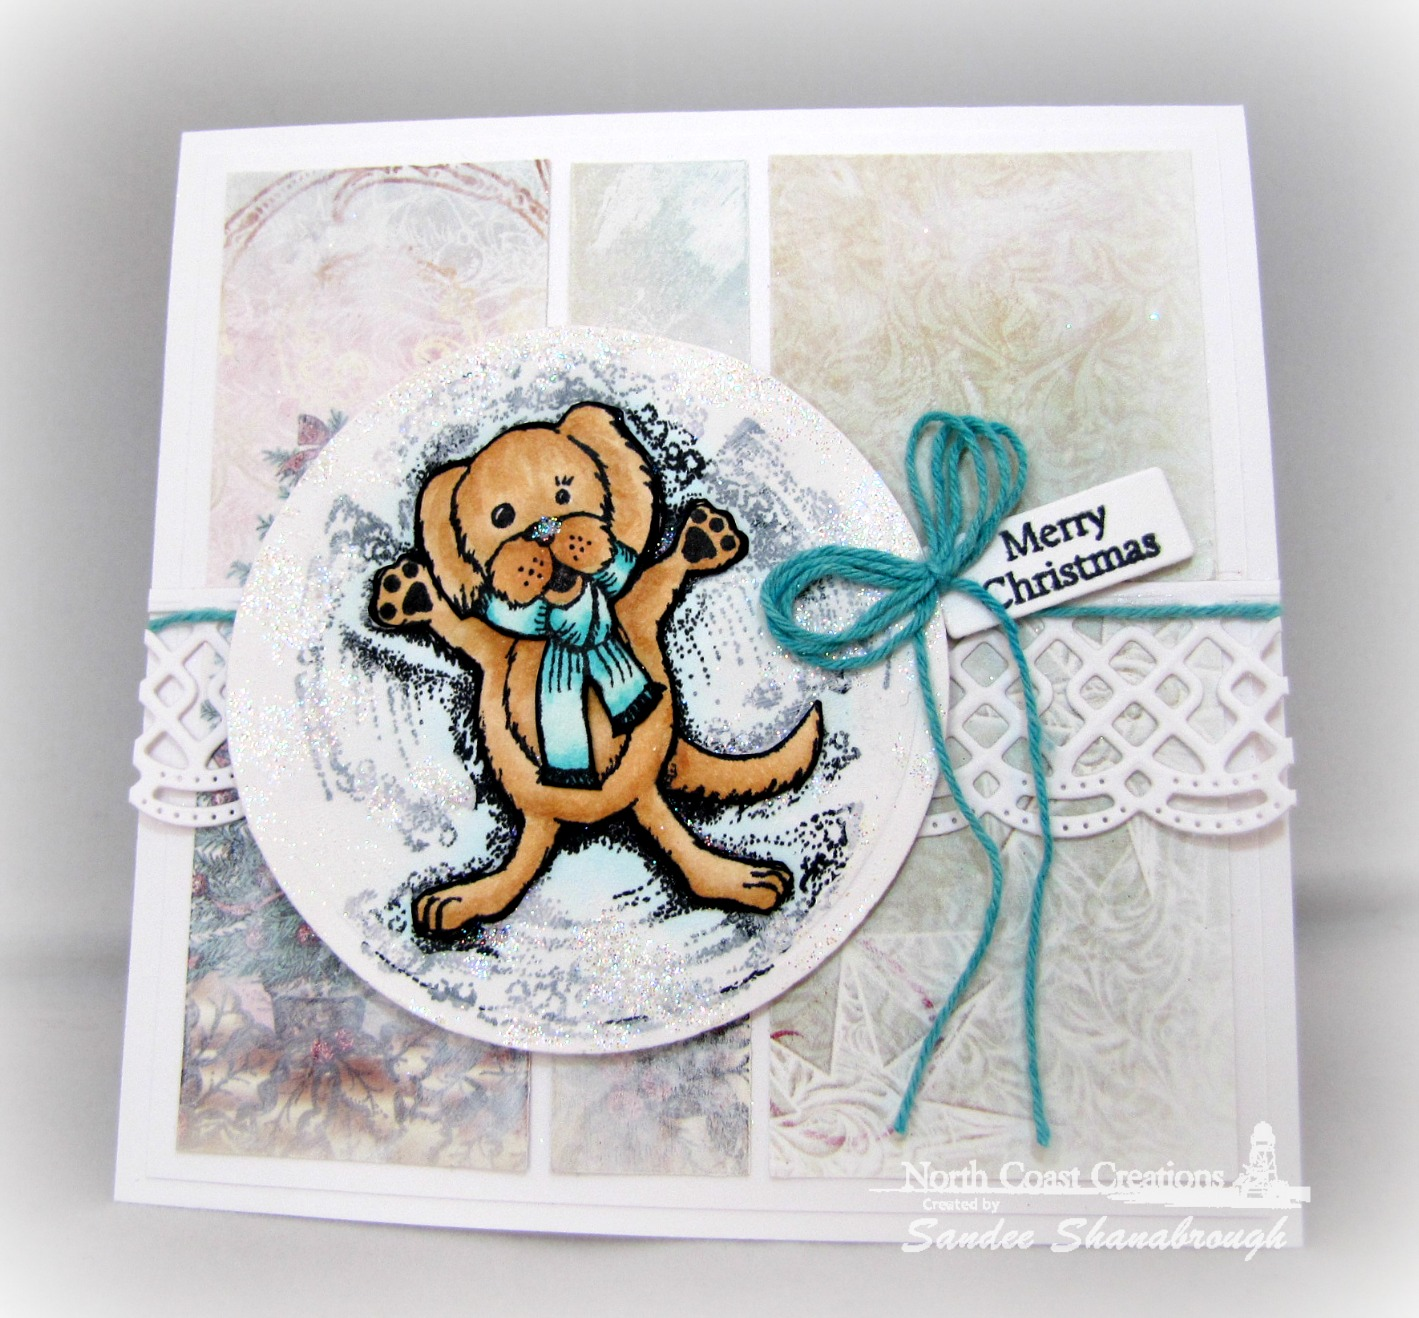 Stamps - North Coast Creations Snow Angel Murphy, Our Daily Bread Designs Custom  Beautiful Borders Dies, ODBD Mini Tag Sentiments, ODBD Custom Mini Tags Dies, ODBD Christmas Paper Collection 2014